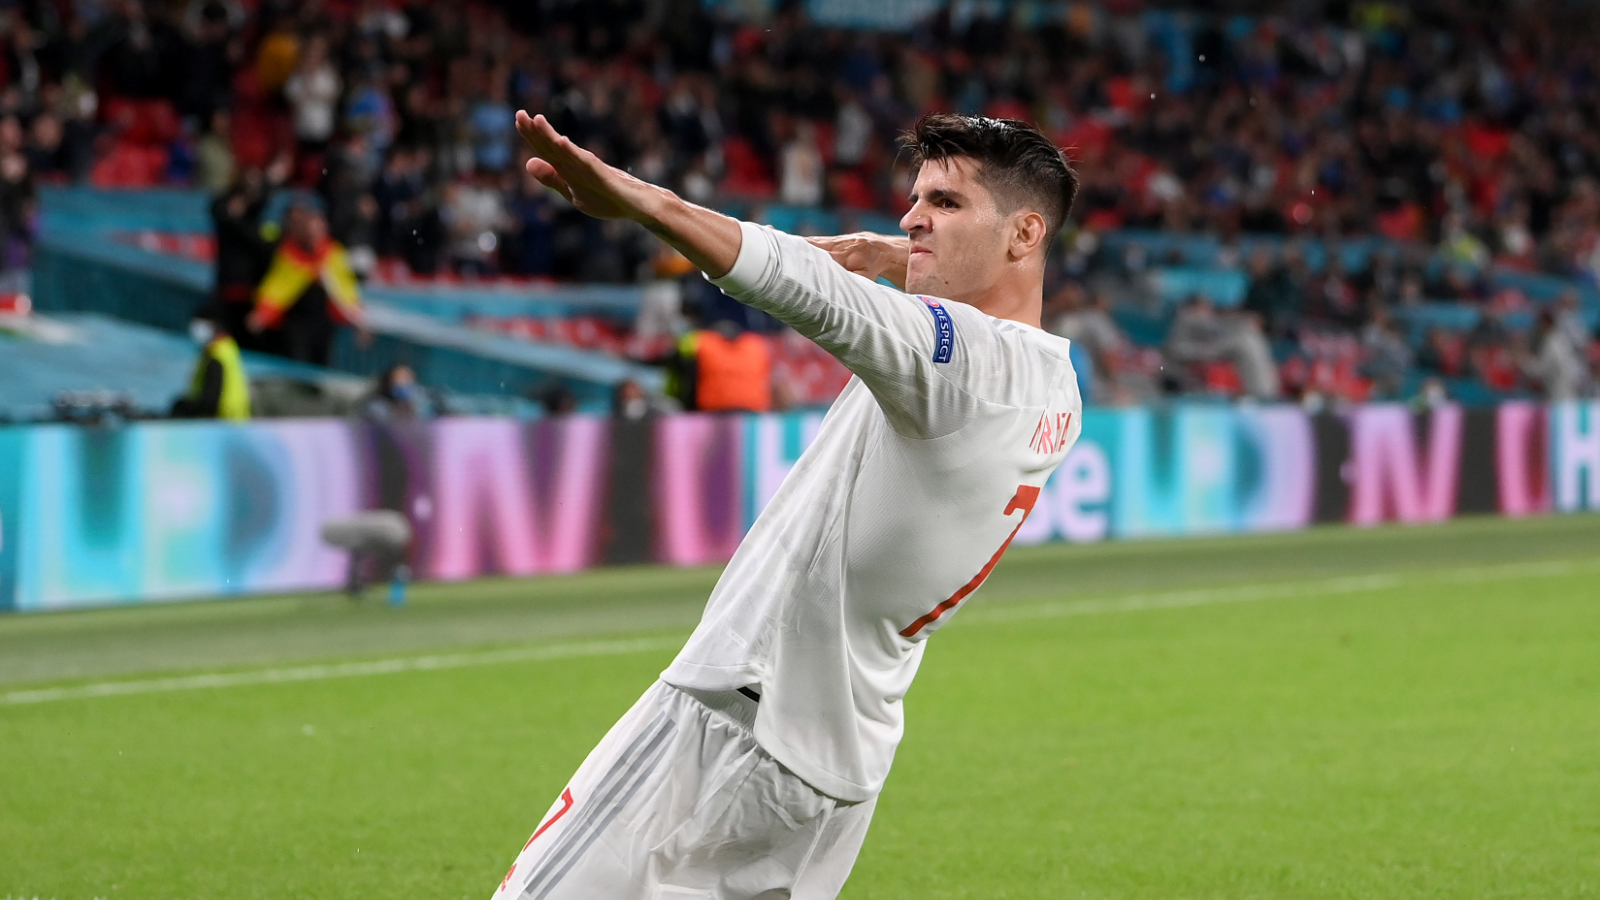 Morata overtakes Torres and joins Ronaldo to make history with dramatic late equaliser against Italy